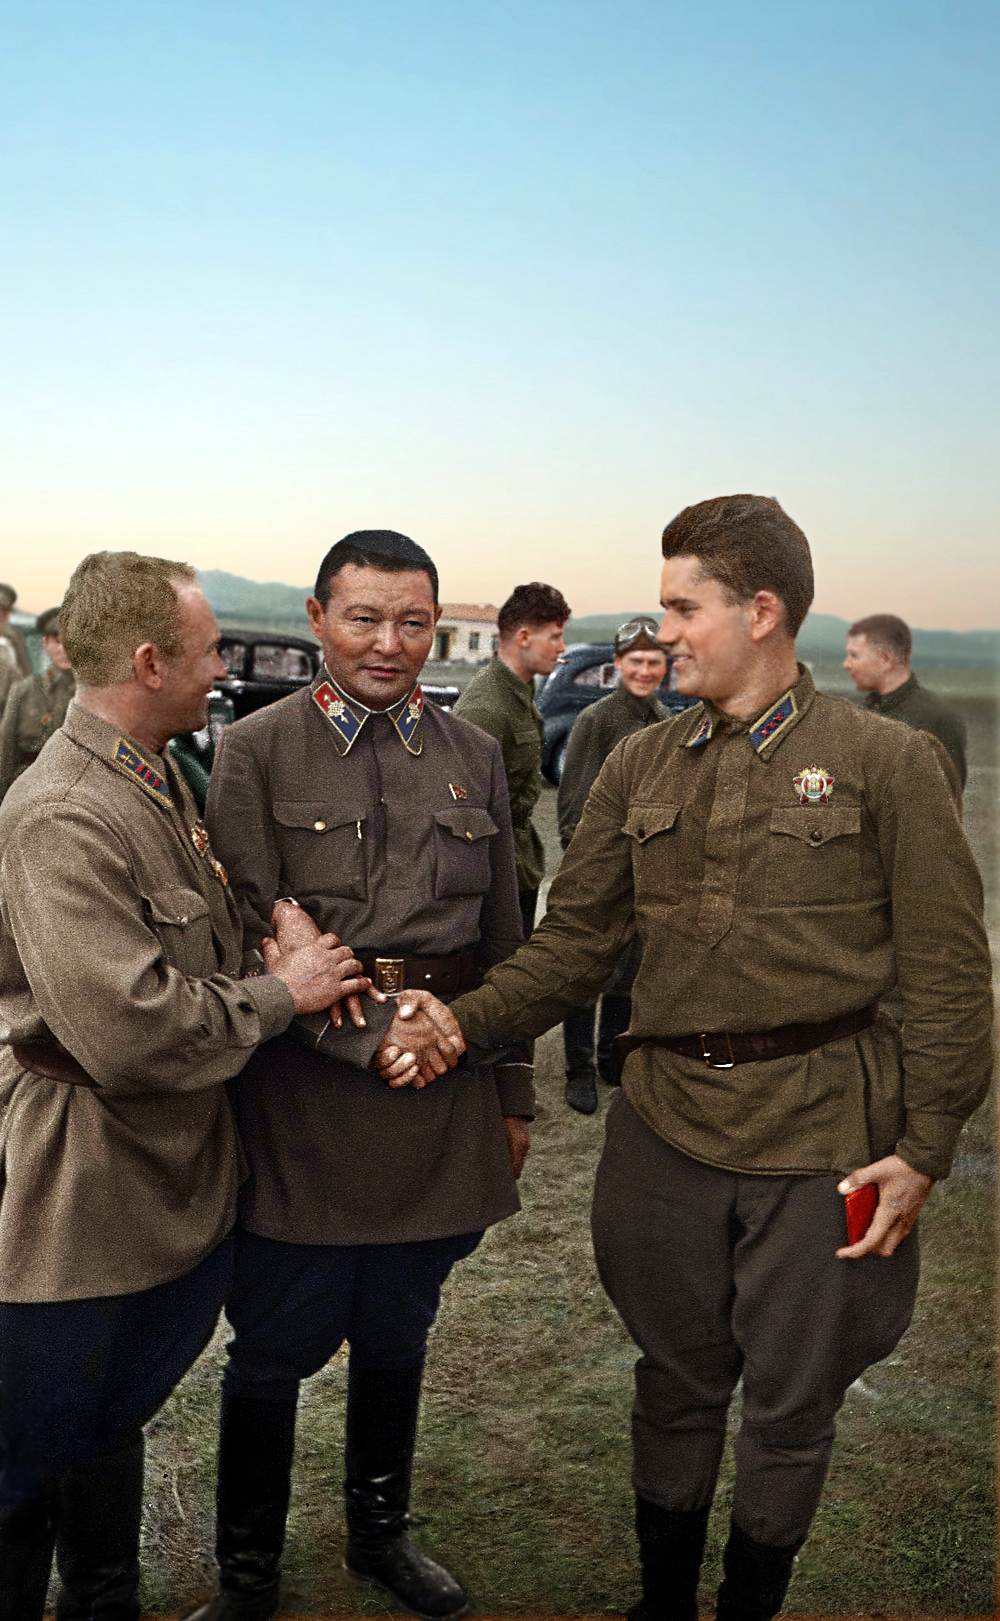 Khalkhin Gol 1939 -  Red Army pilots and Khorloogiin Choibalsan, general chief commander of the Mongolian armed forces